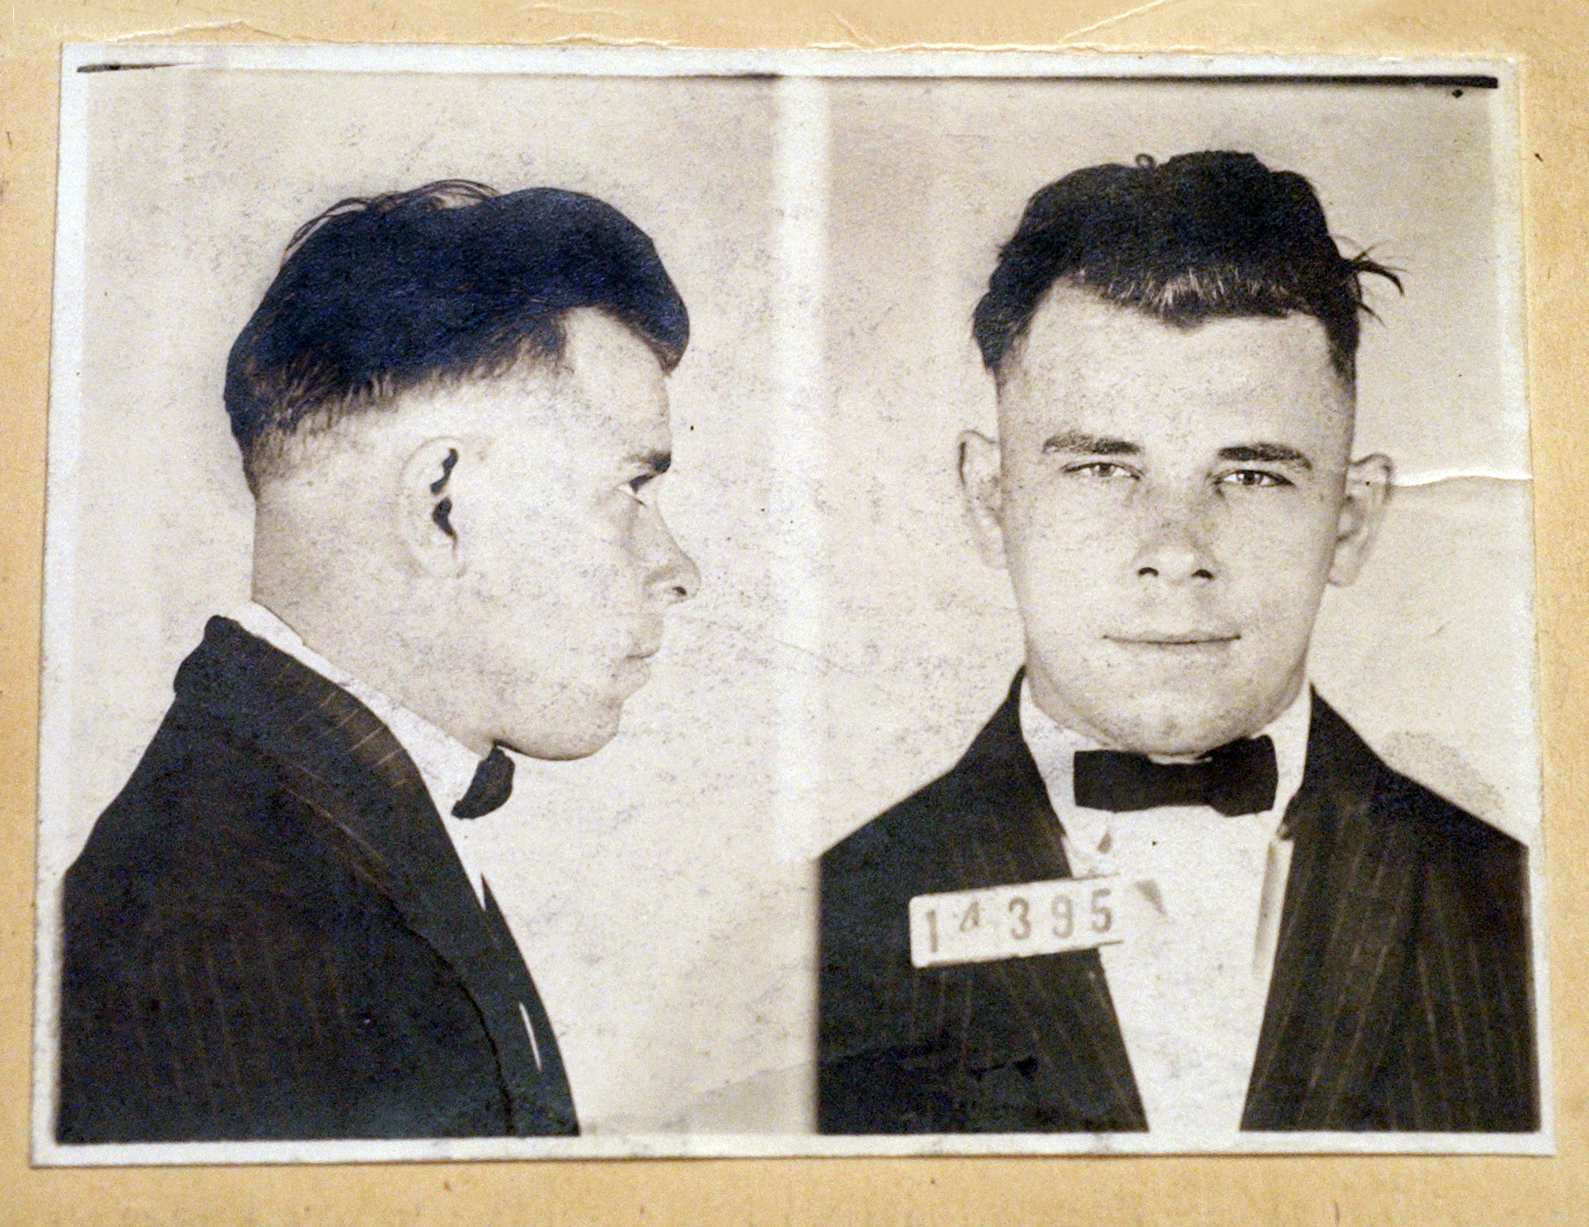 FILE - This undated file photo shows Indiana Reformatory booking shots of John Dillinger, stored in the state archives. A judge will hear an Indianapolis cemetery's bid Wednesday, Nov. 4, 2019, to dismiss a lawsuit filed by a relative of the 1930s gangster  who wants to exhume Dillinger's gravesite to determine if the notorious criminal is actually buried there.